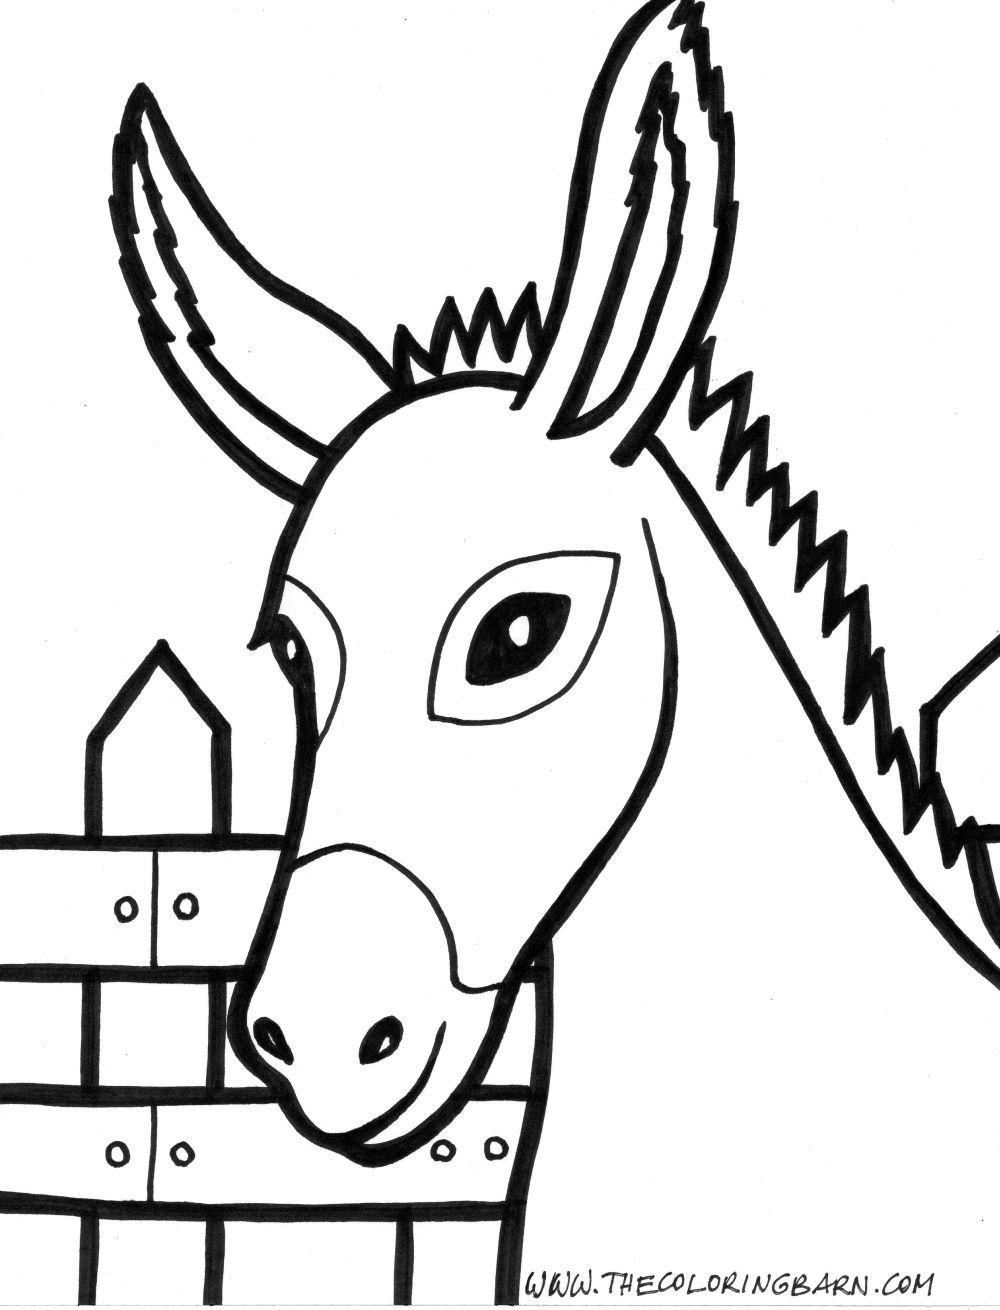 Coloring pitchers of animals - Cool Baby Farm Animal Coloring Pages Only Coloring Pages